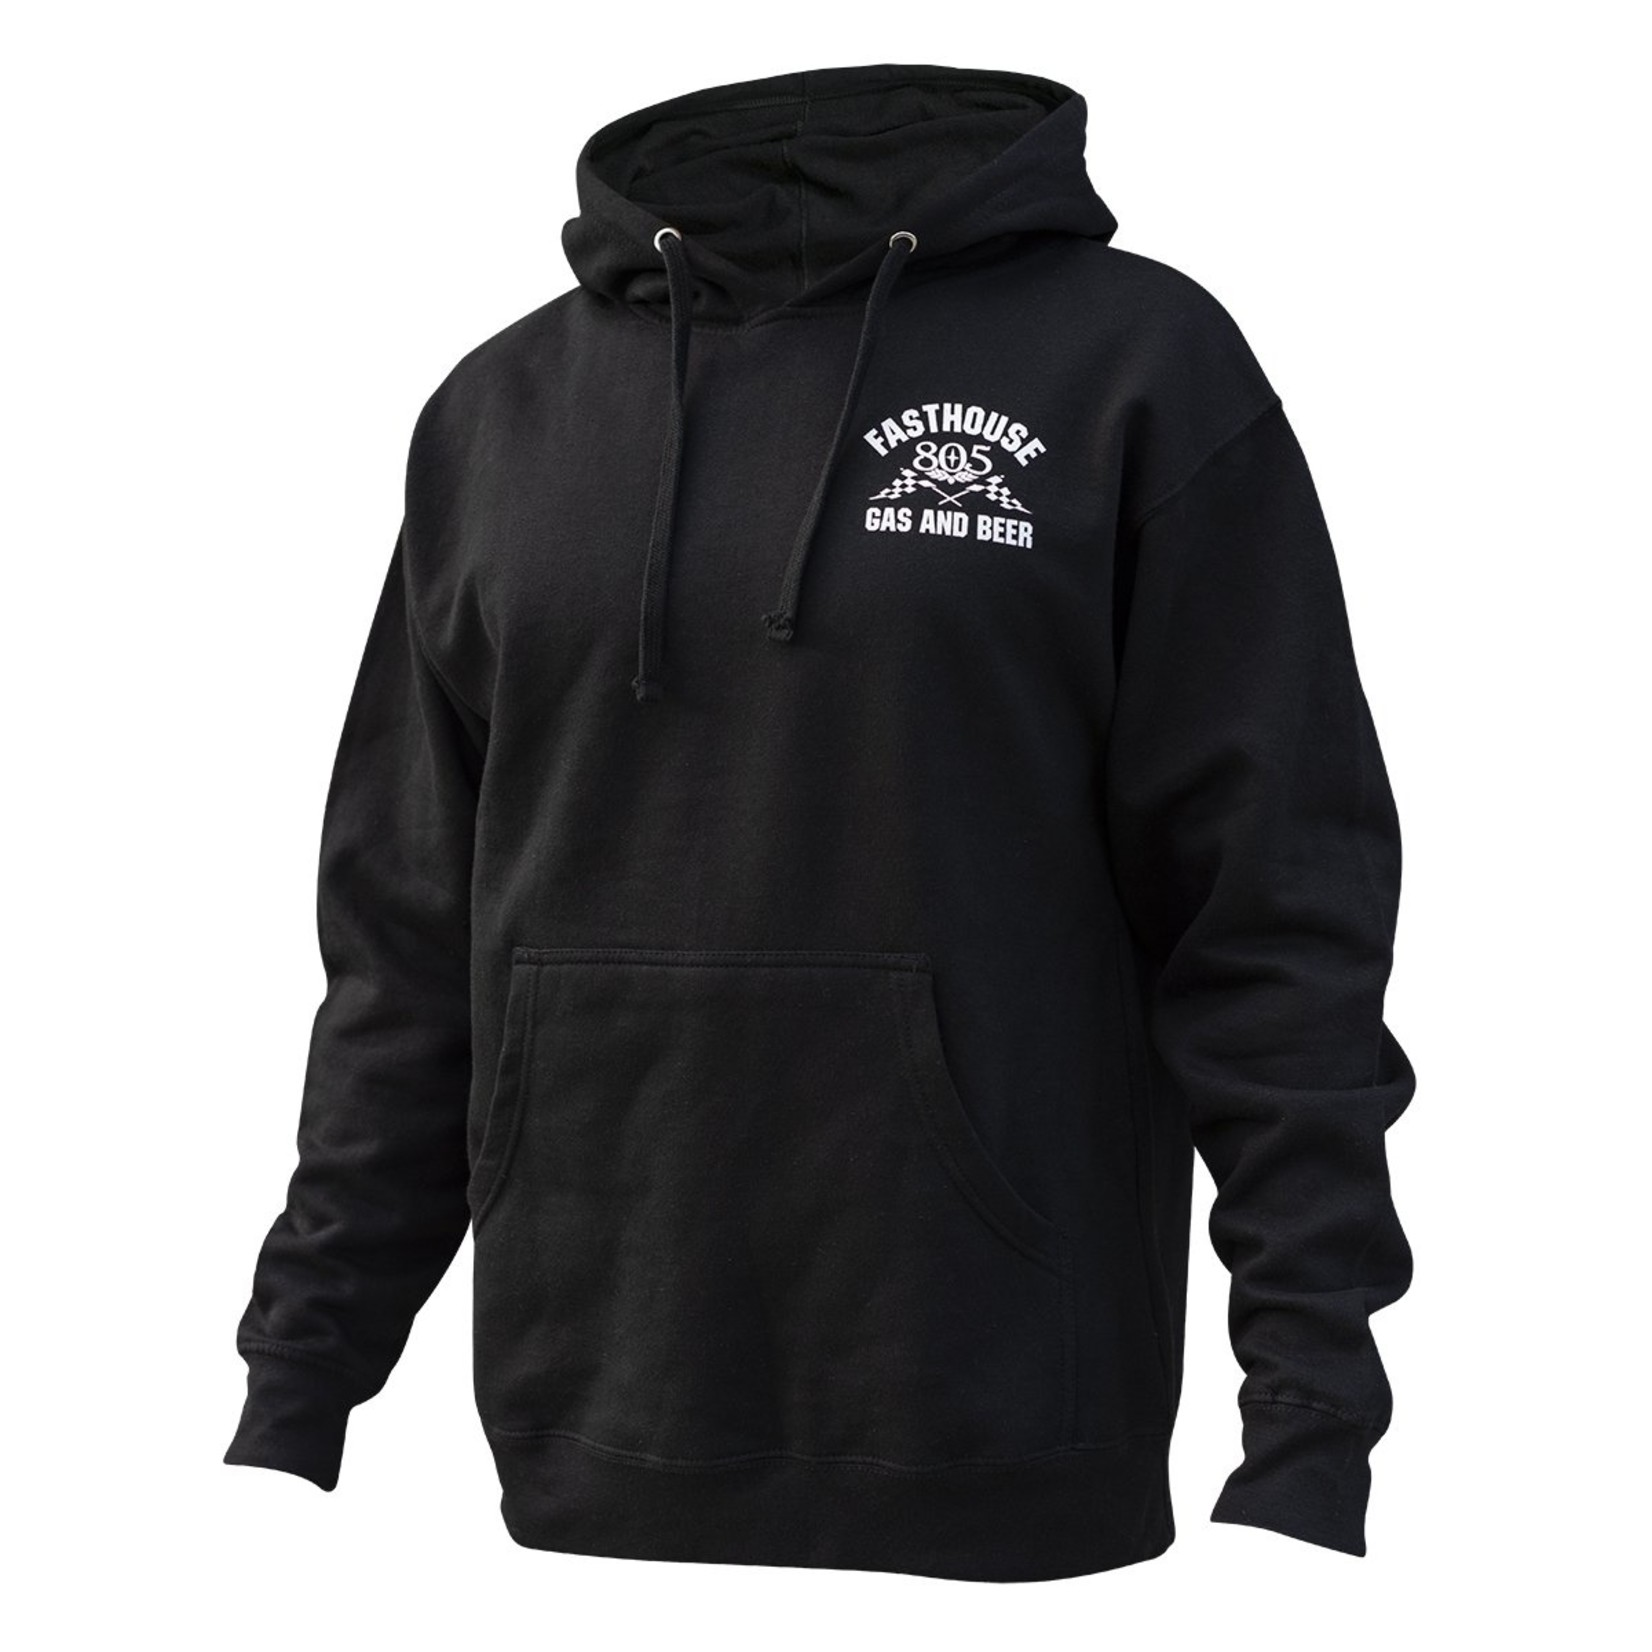 Fasthouse 805 Podium Pullover Hoodie